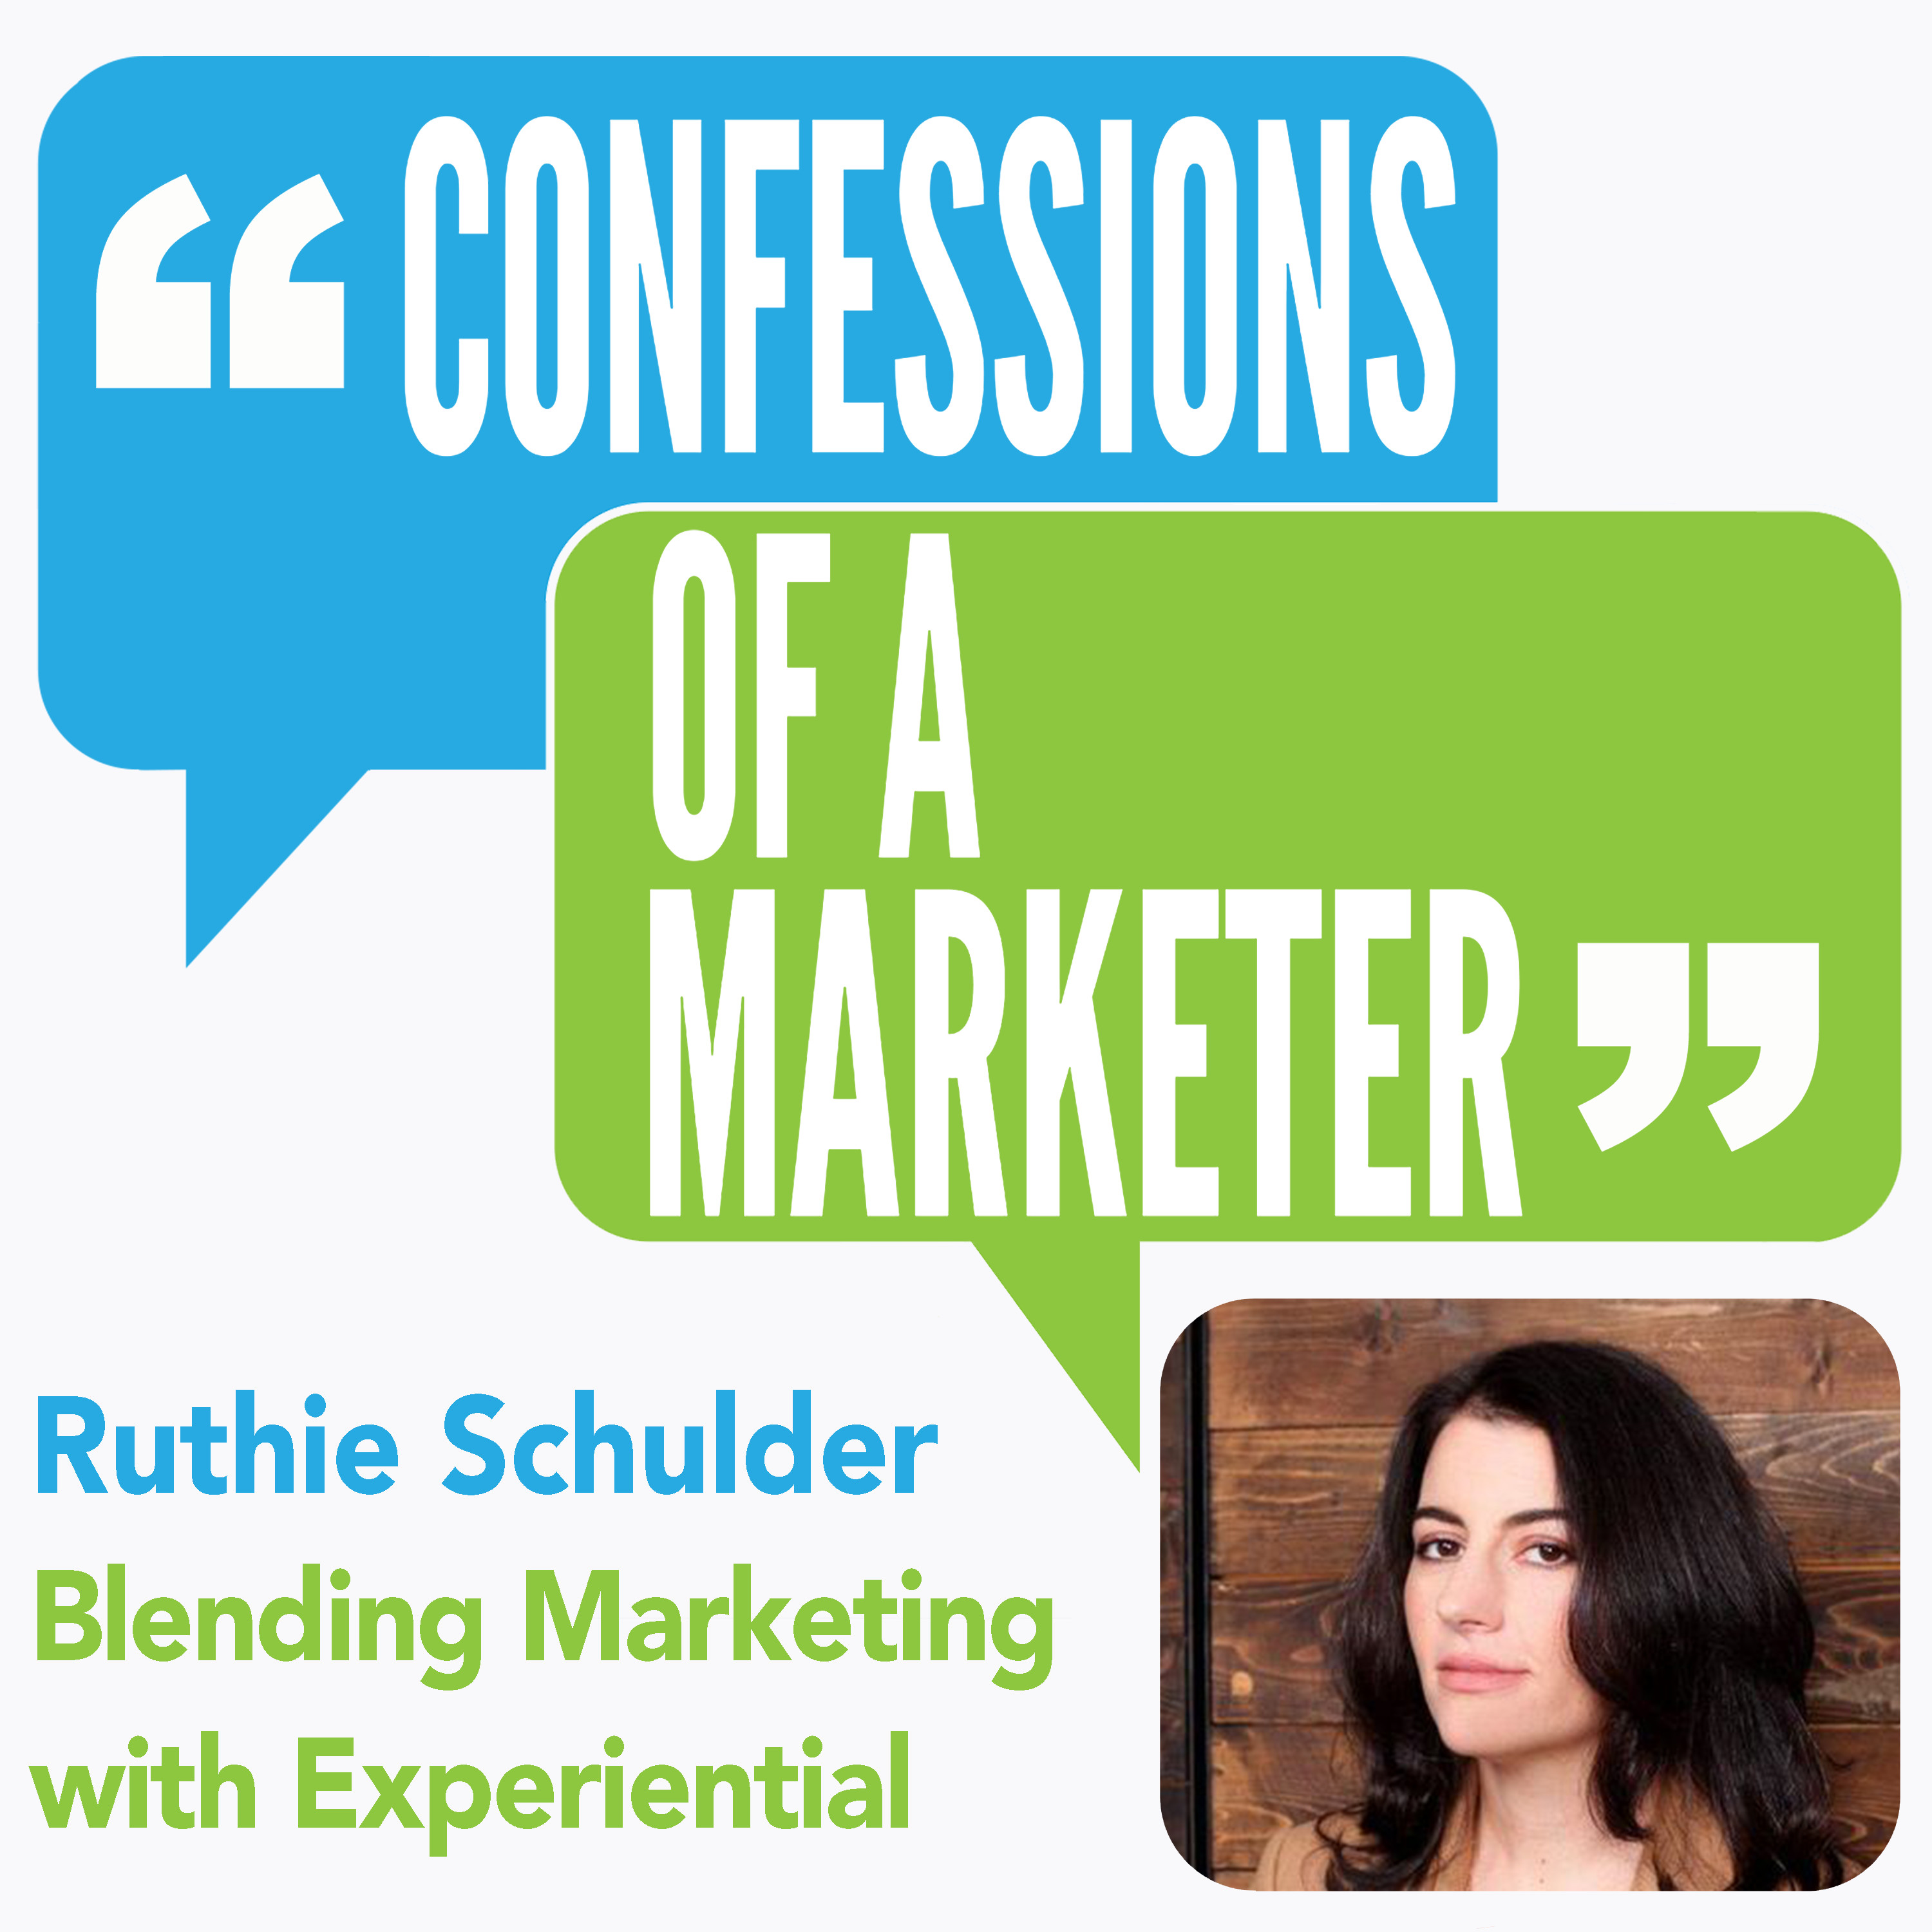 Blending Marketing with Experiential